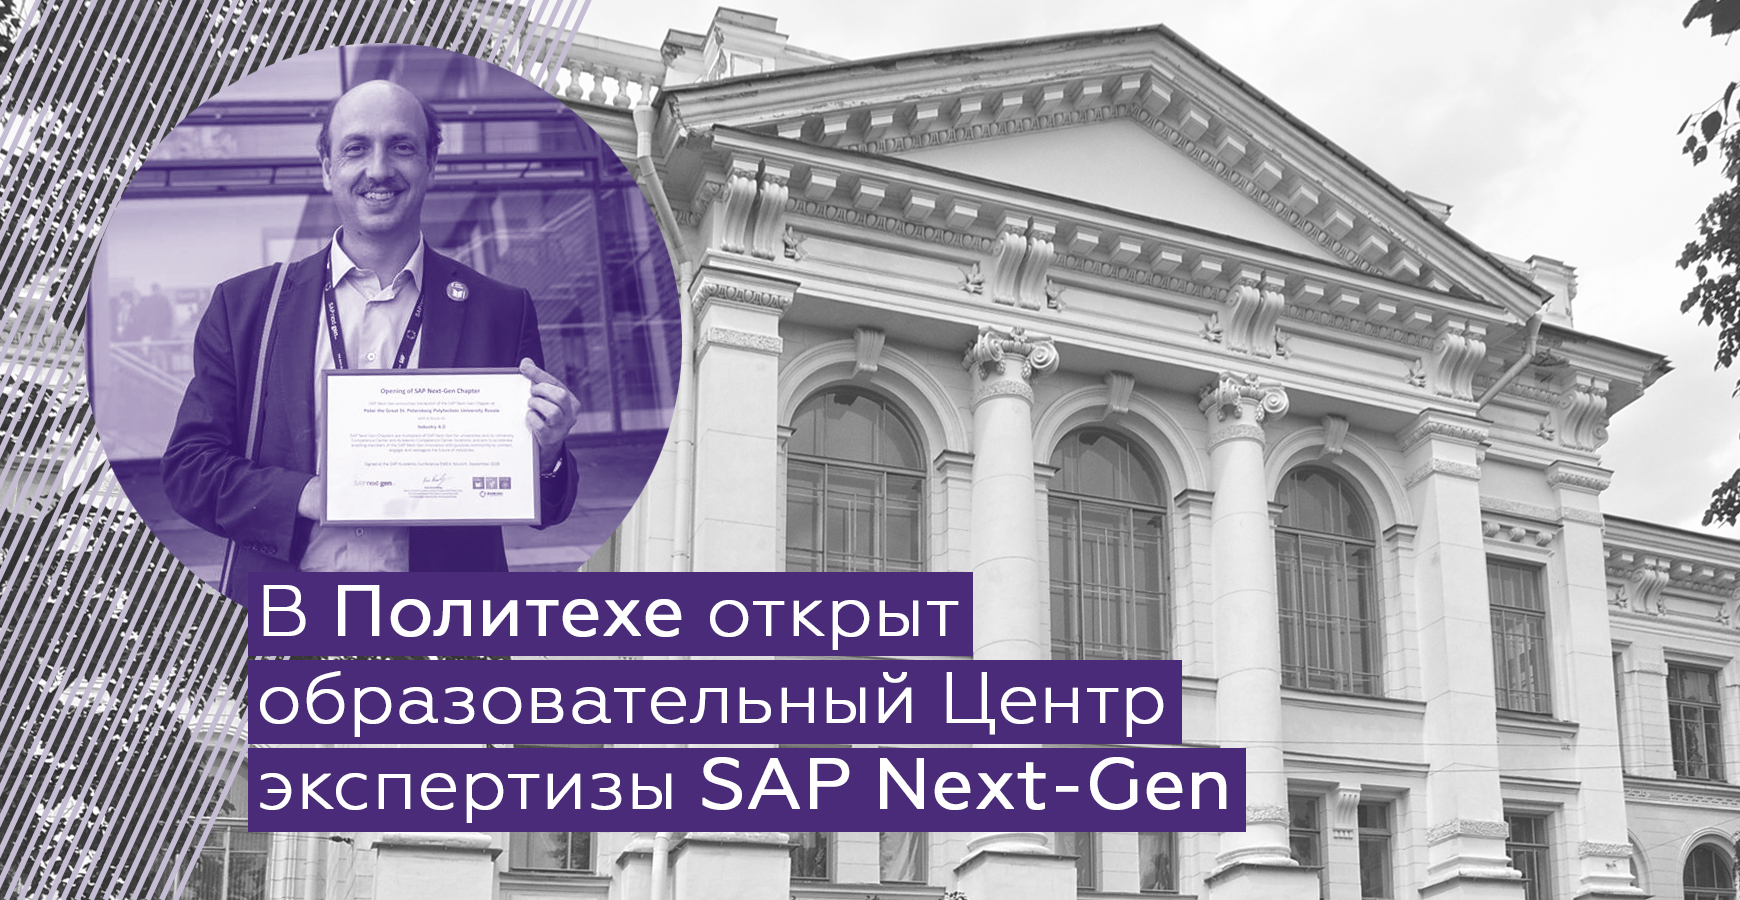 http://assets.fea.ru/uploads/fea/news/2018/09_september/11/sap.jpg